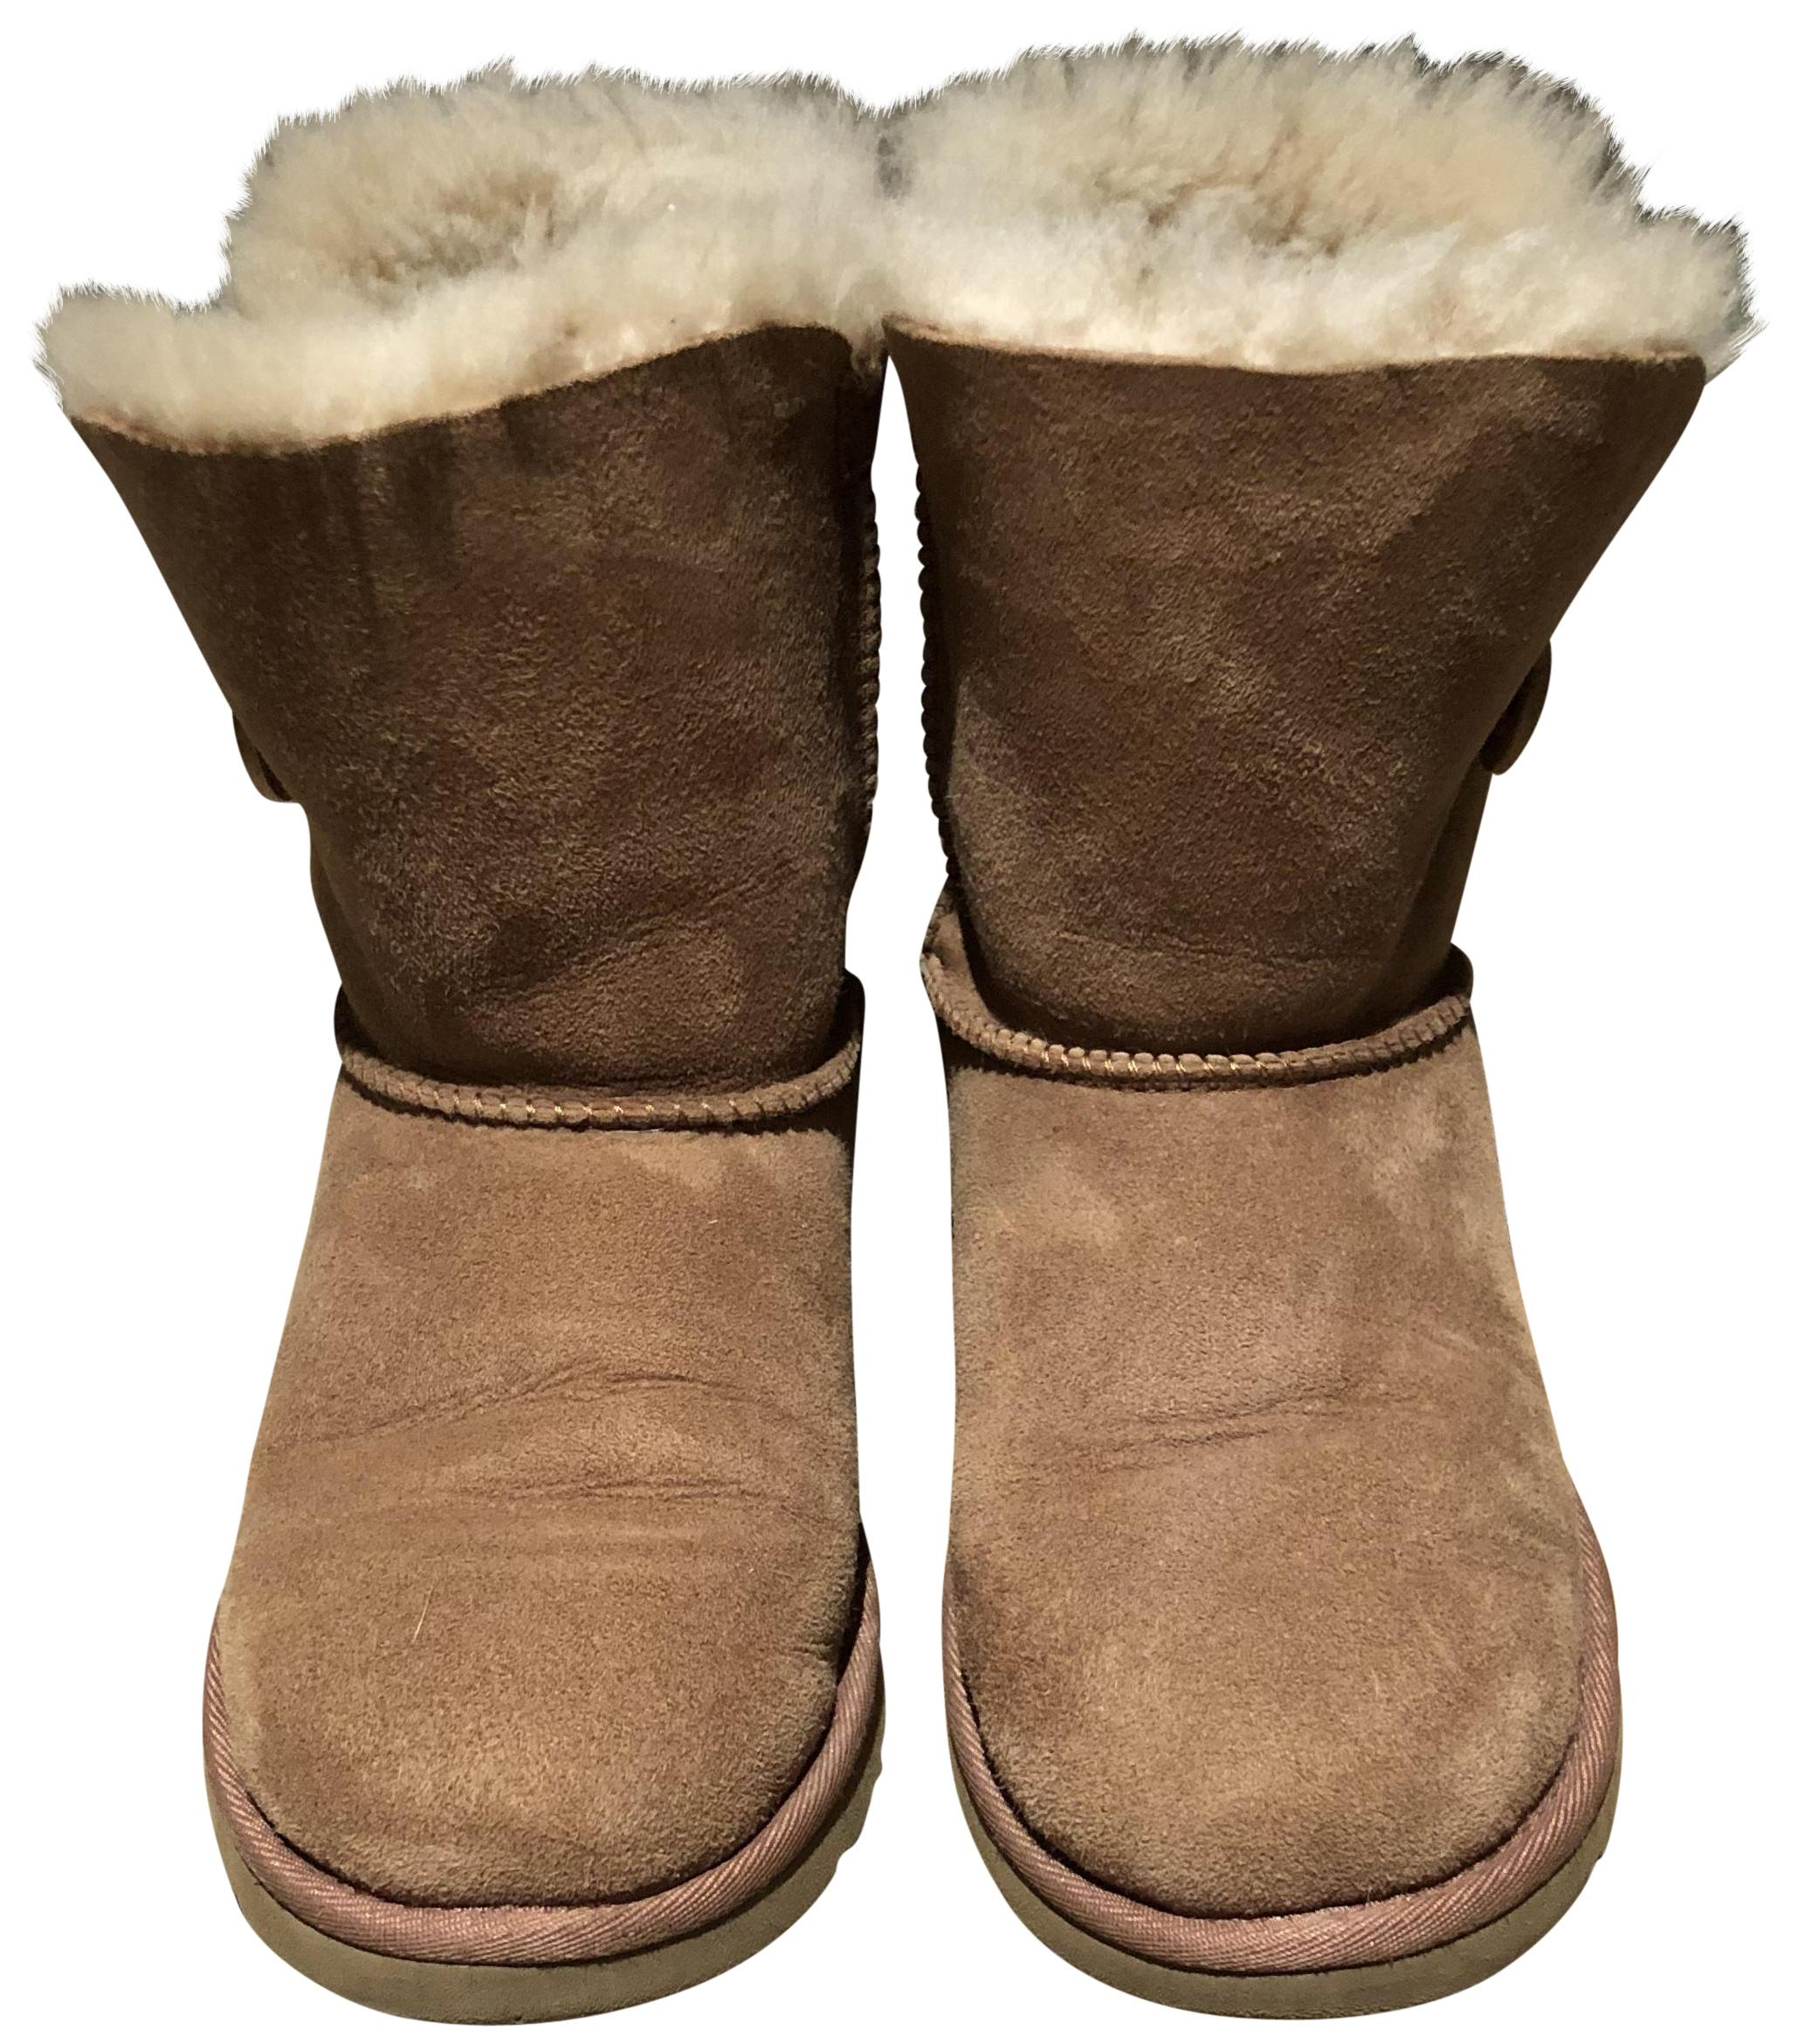 92ab44f6c2e new zealand ugg classic short vs bailey button android 0fd79 99a7d